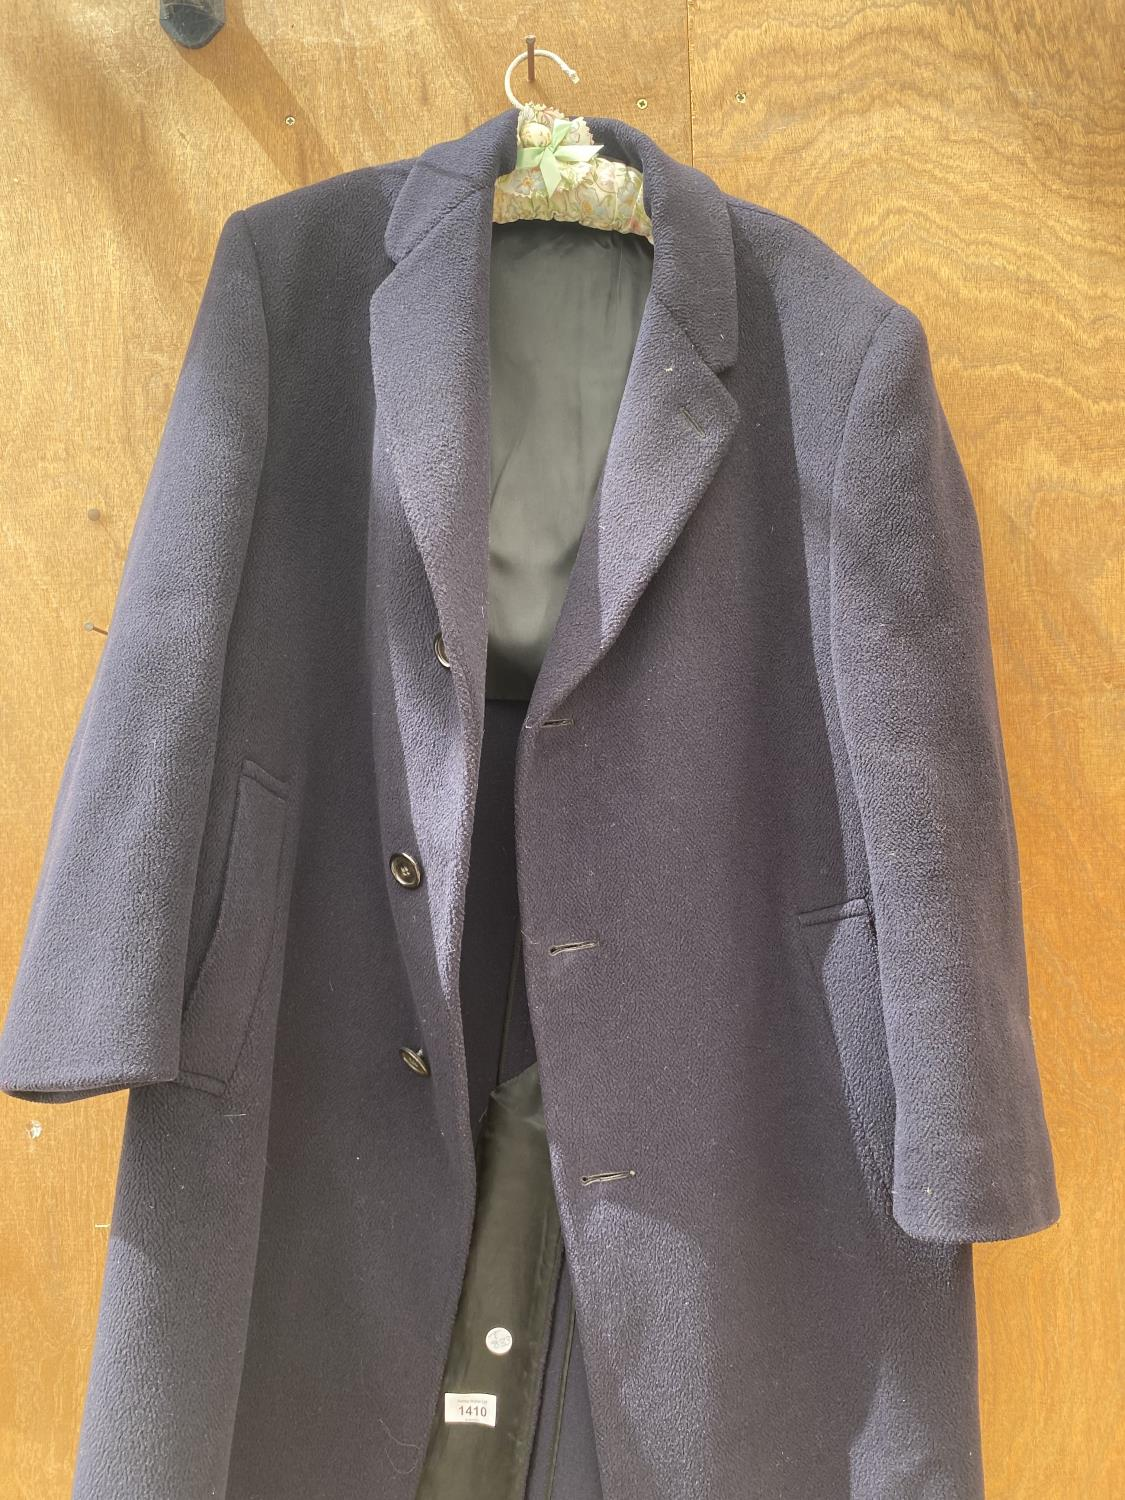 A GENTS CROMBIE JACKET - Image 4 of 5